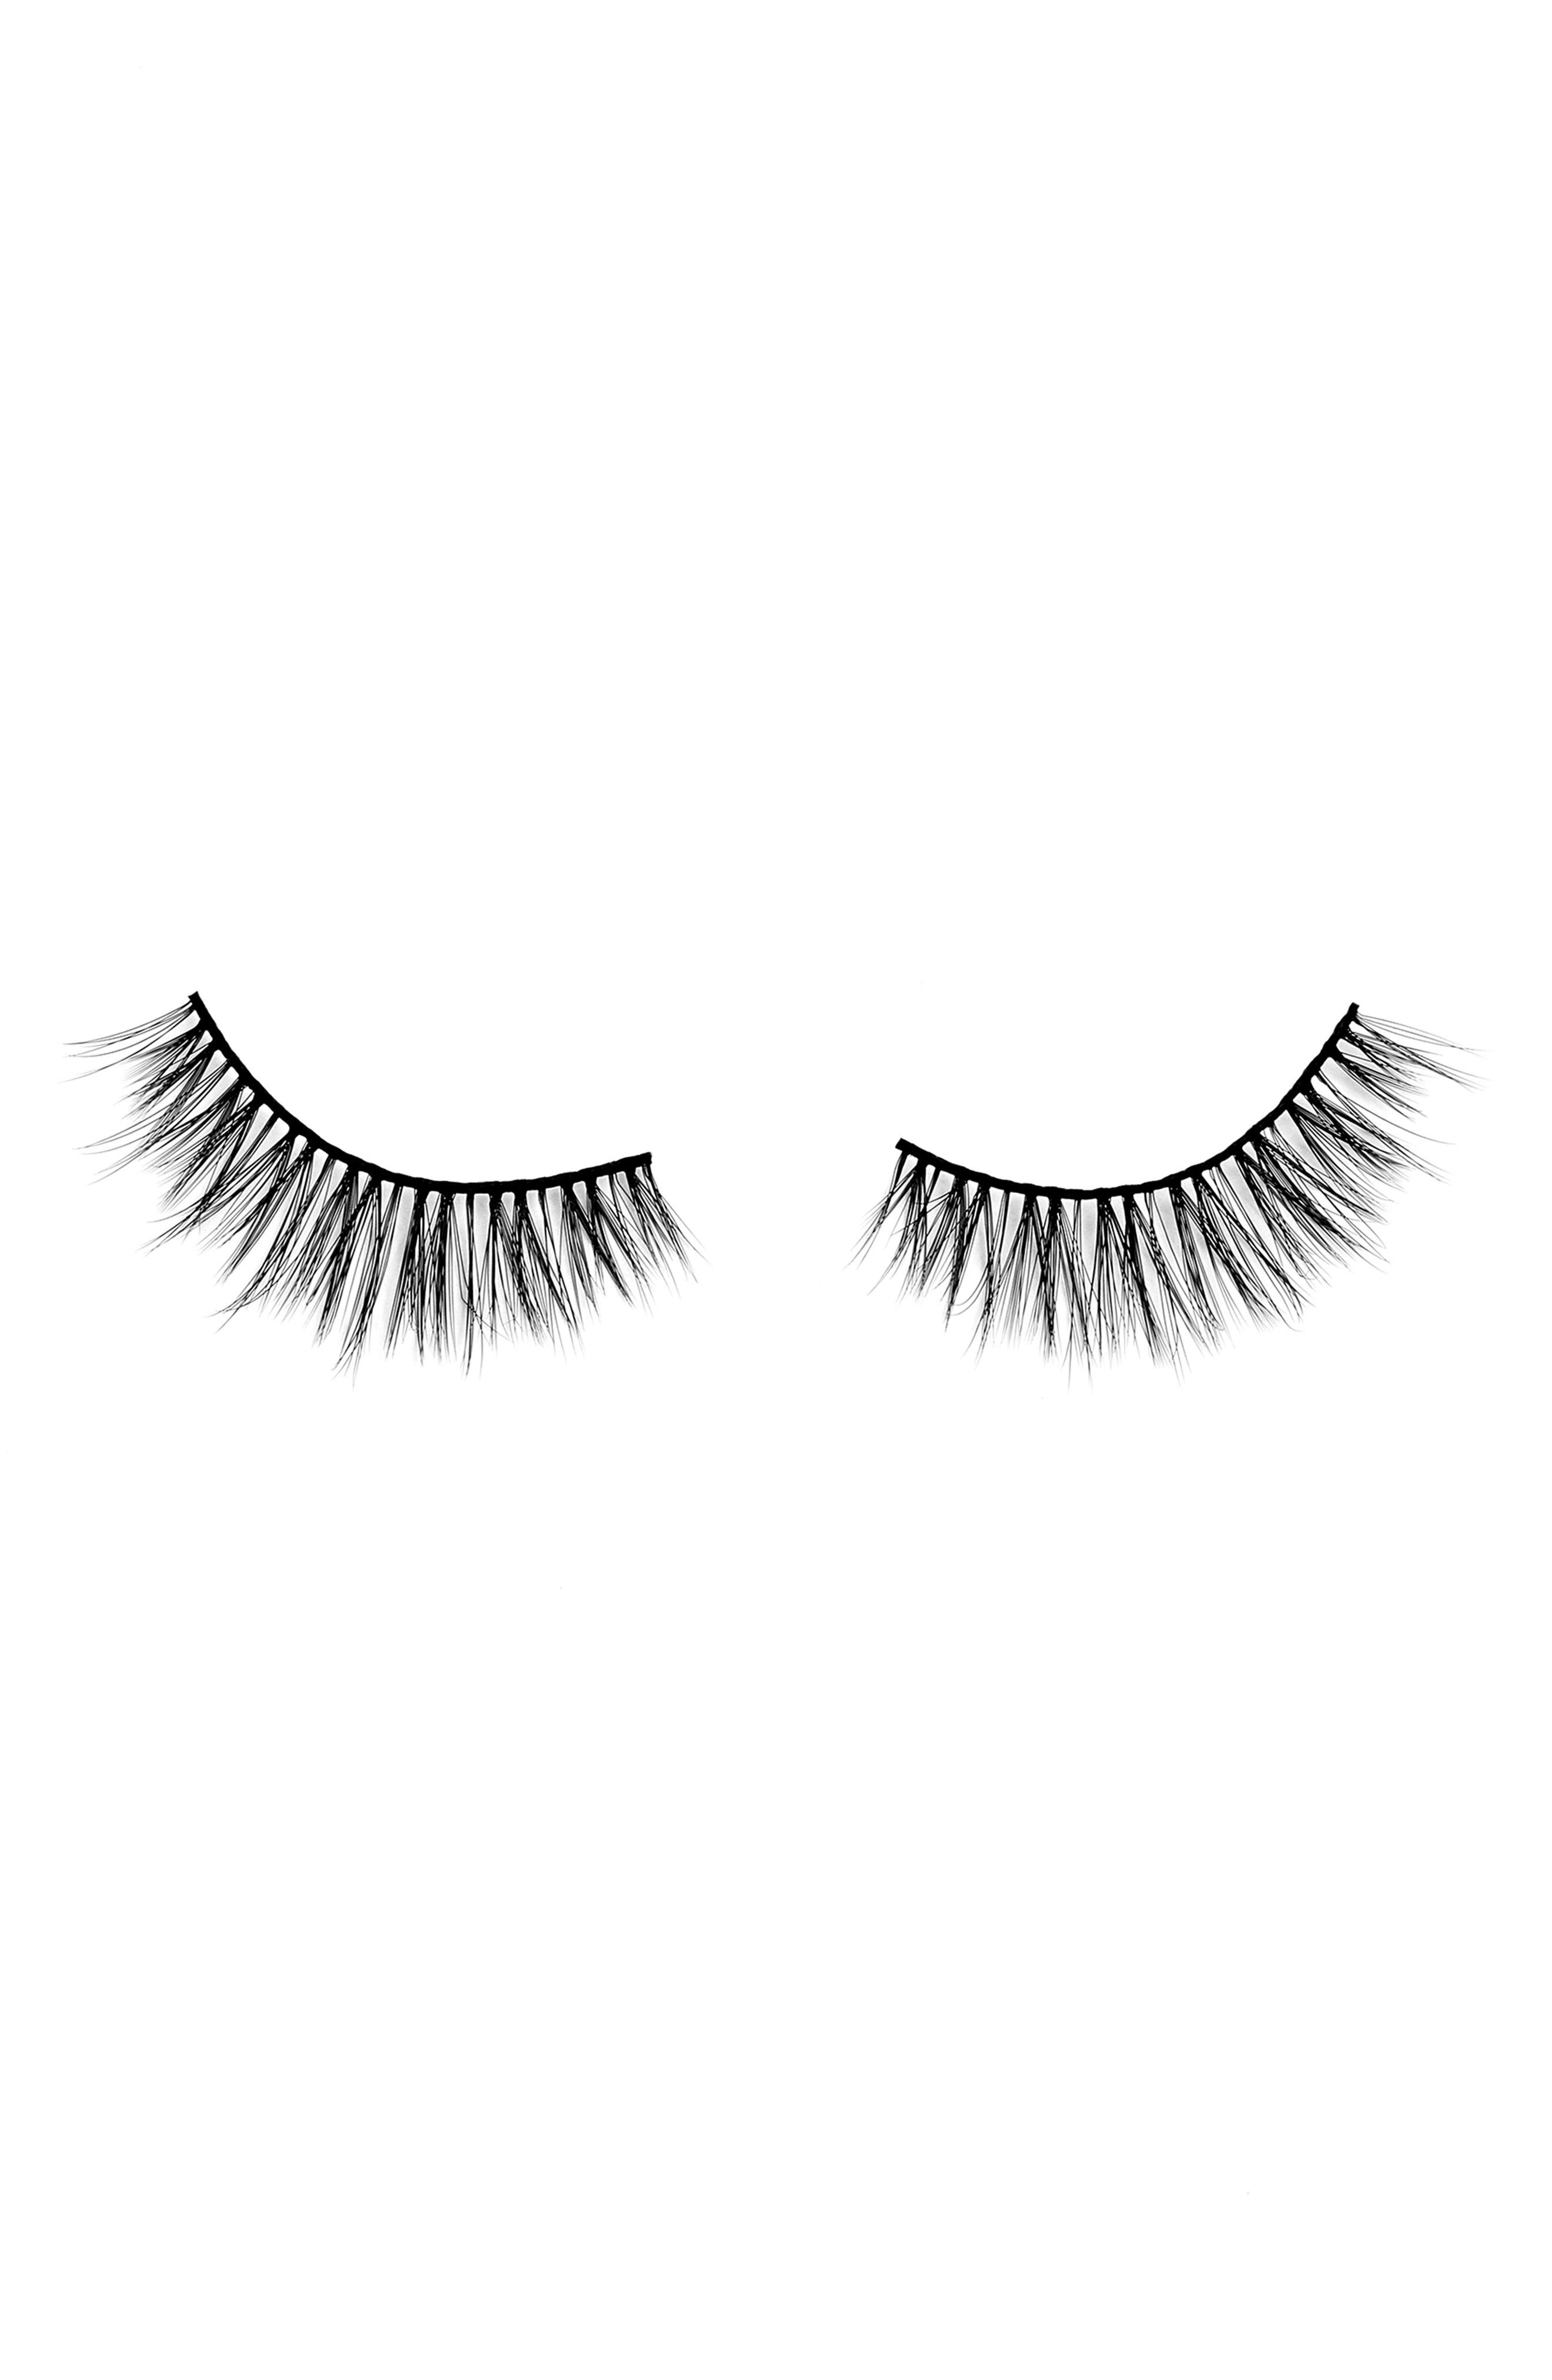 Daily Lashes